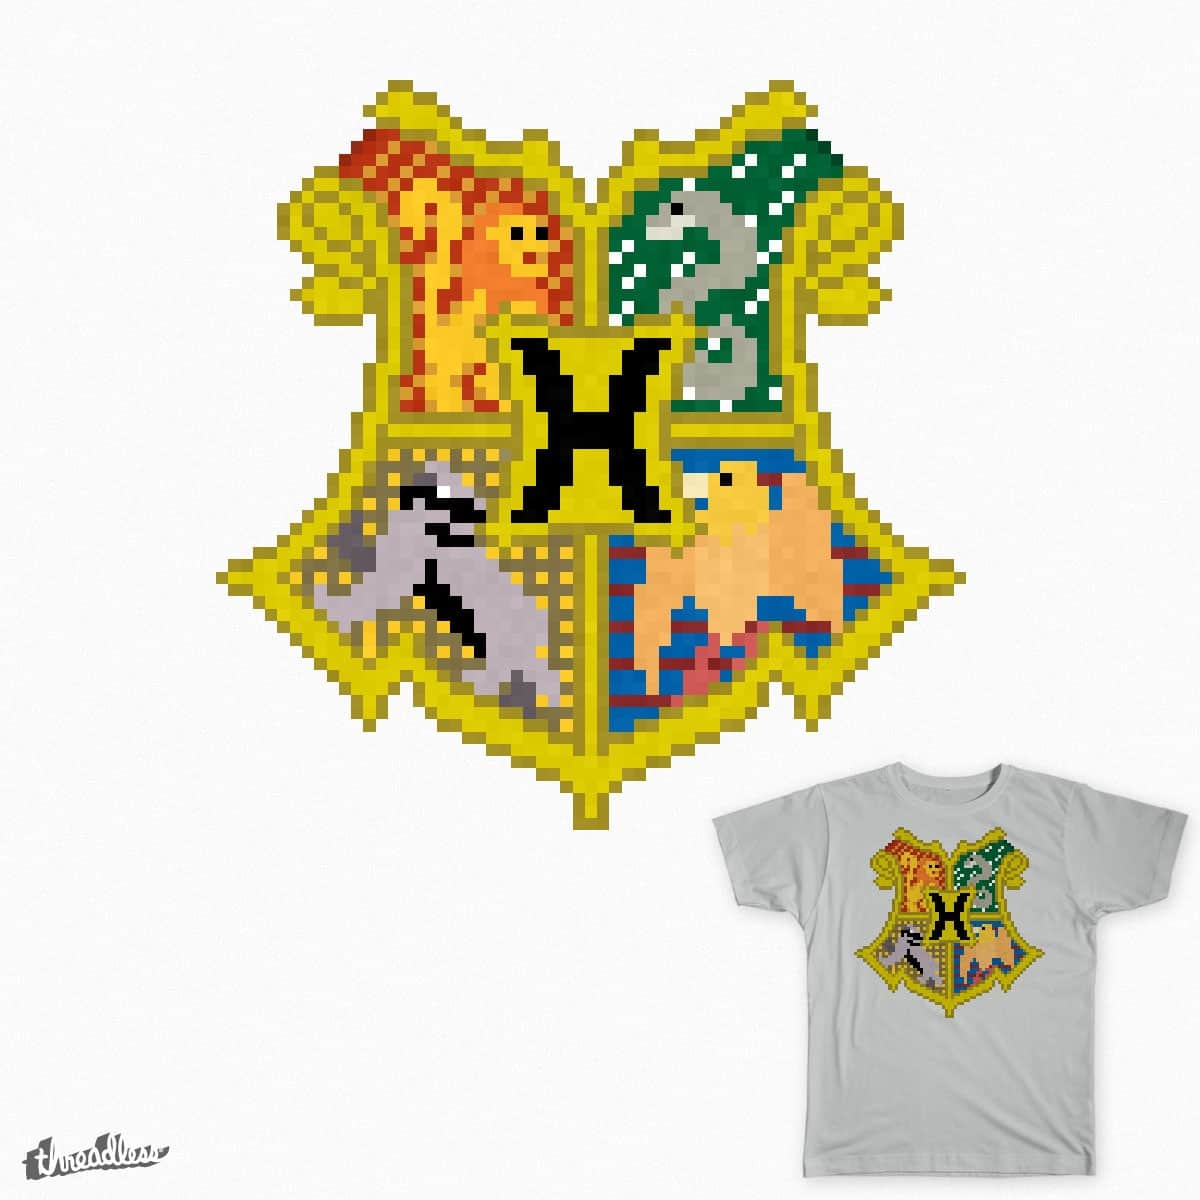 Hogwarts Coat of Arms by EmpireSquared on Threadless